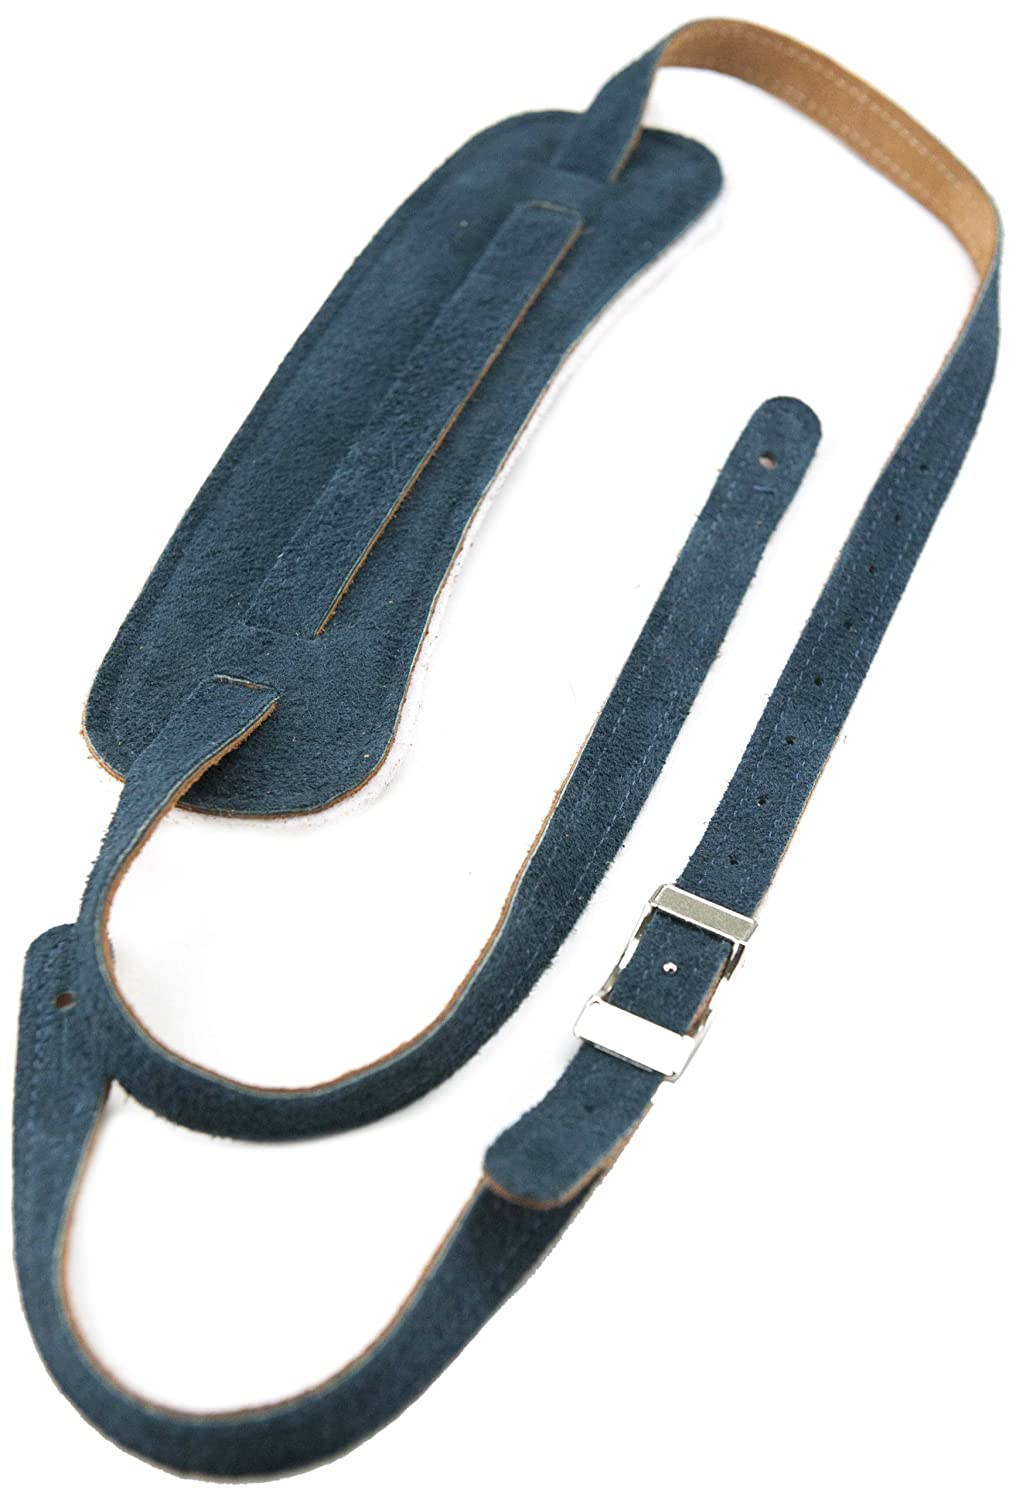 Perris Leathers CBSS-206 Vintage Suede Guitar Strap with Pad Perris Leathers LTD